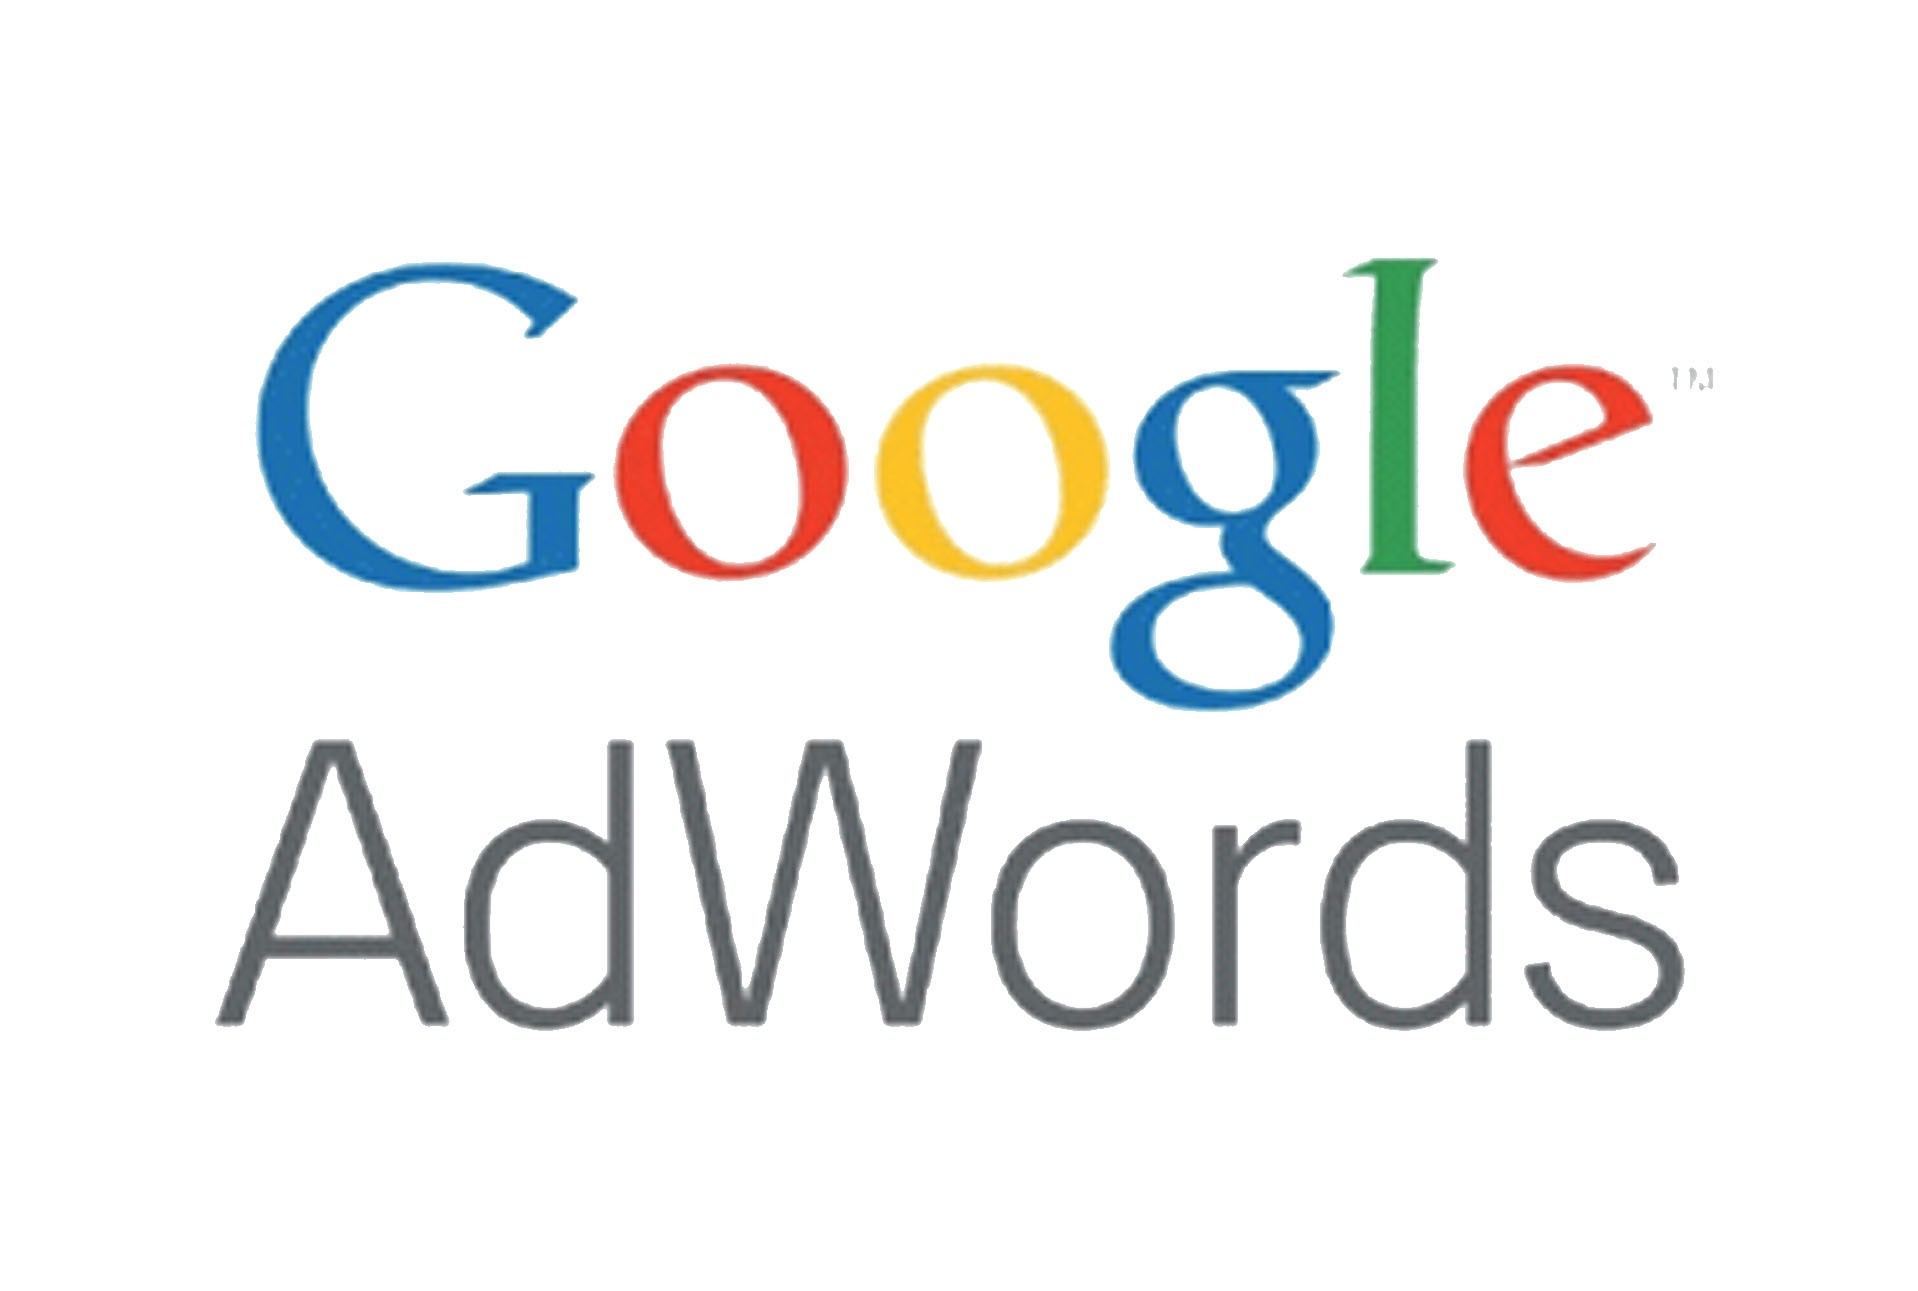 Google Adwords inzetten voor Recruitment